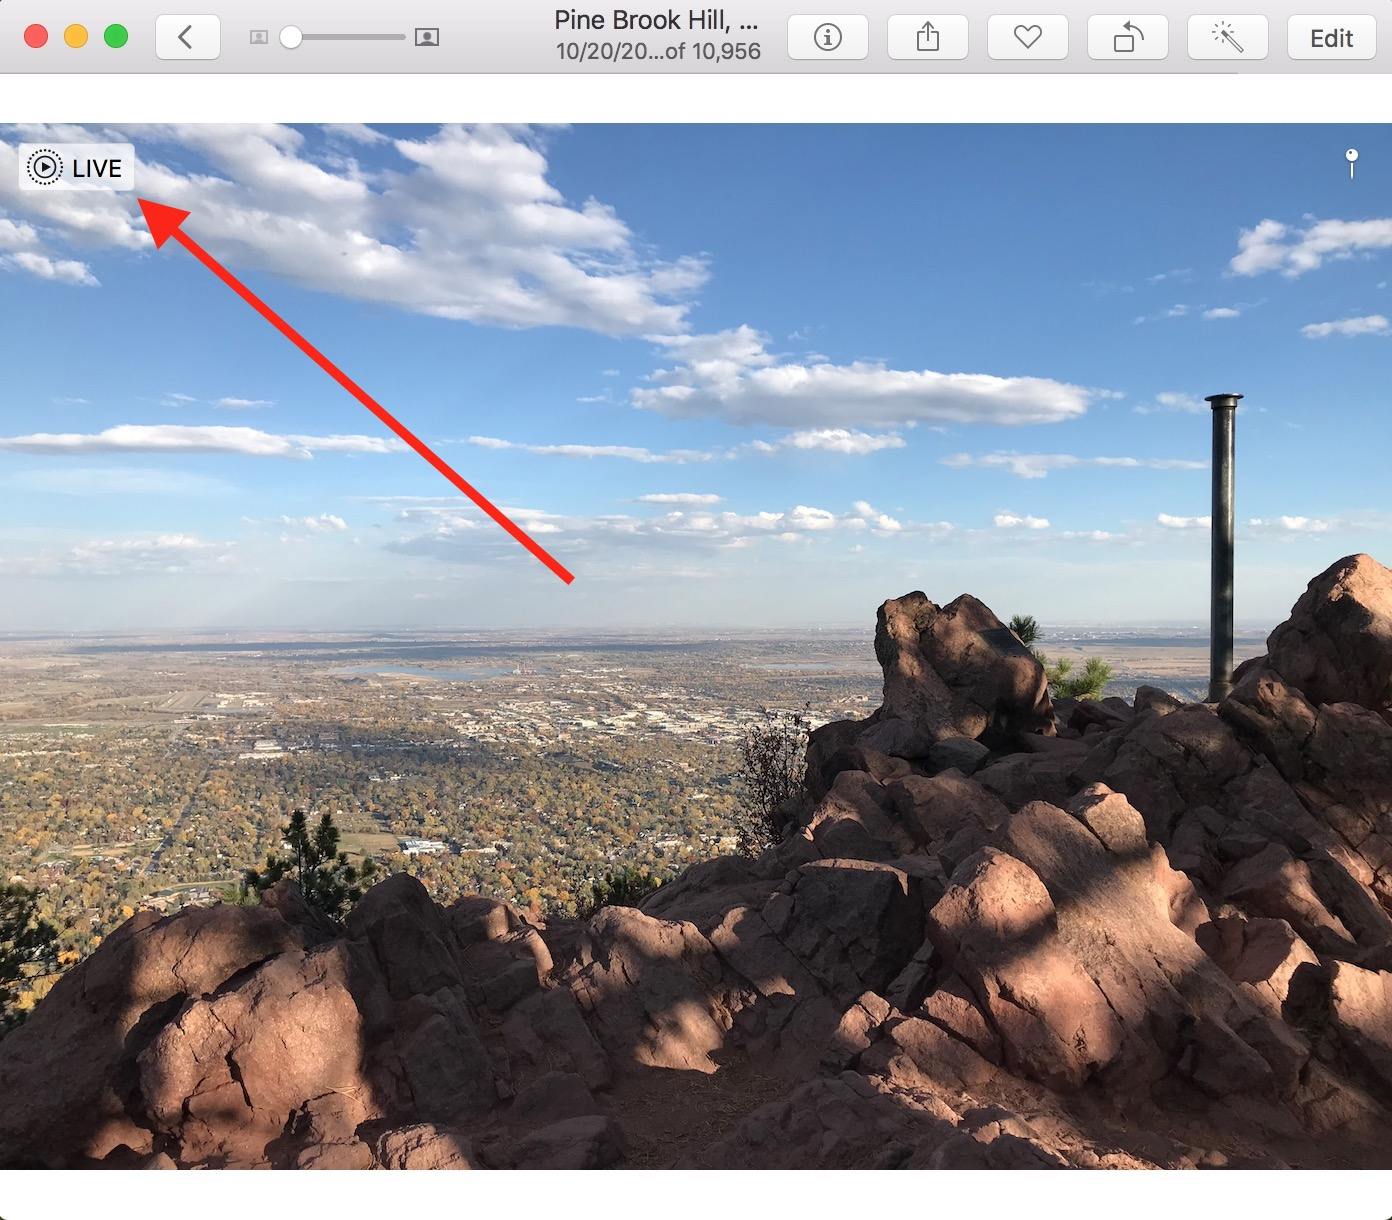 Live Photo Icon in image in Mac Photos app